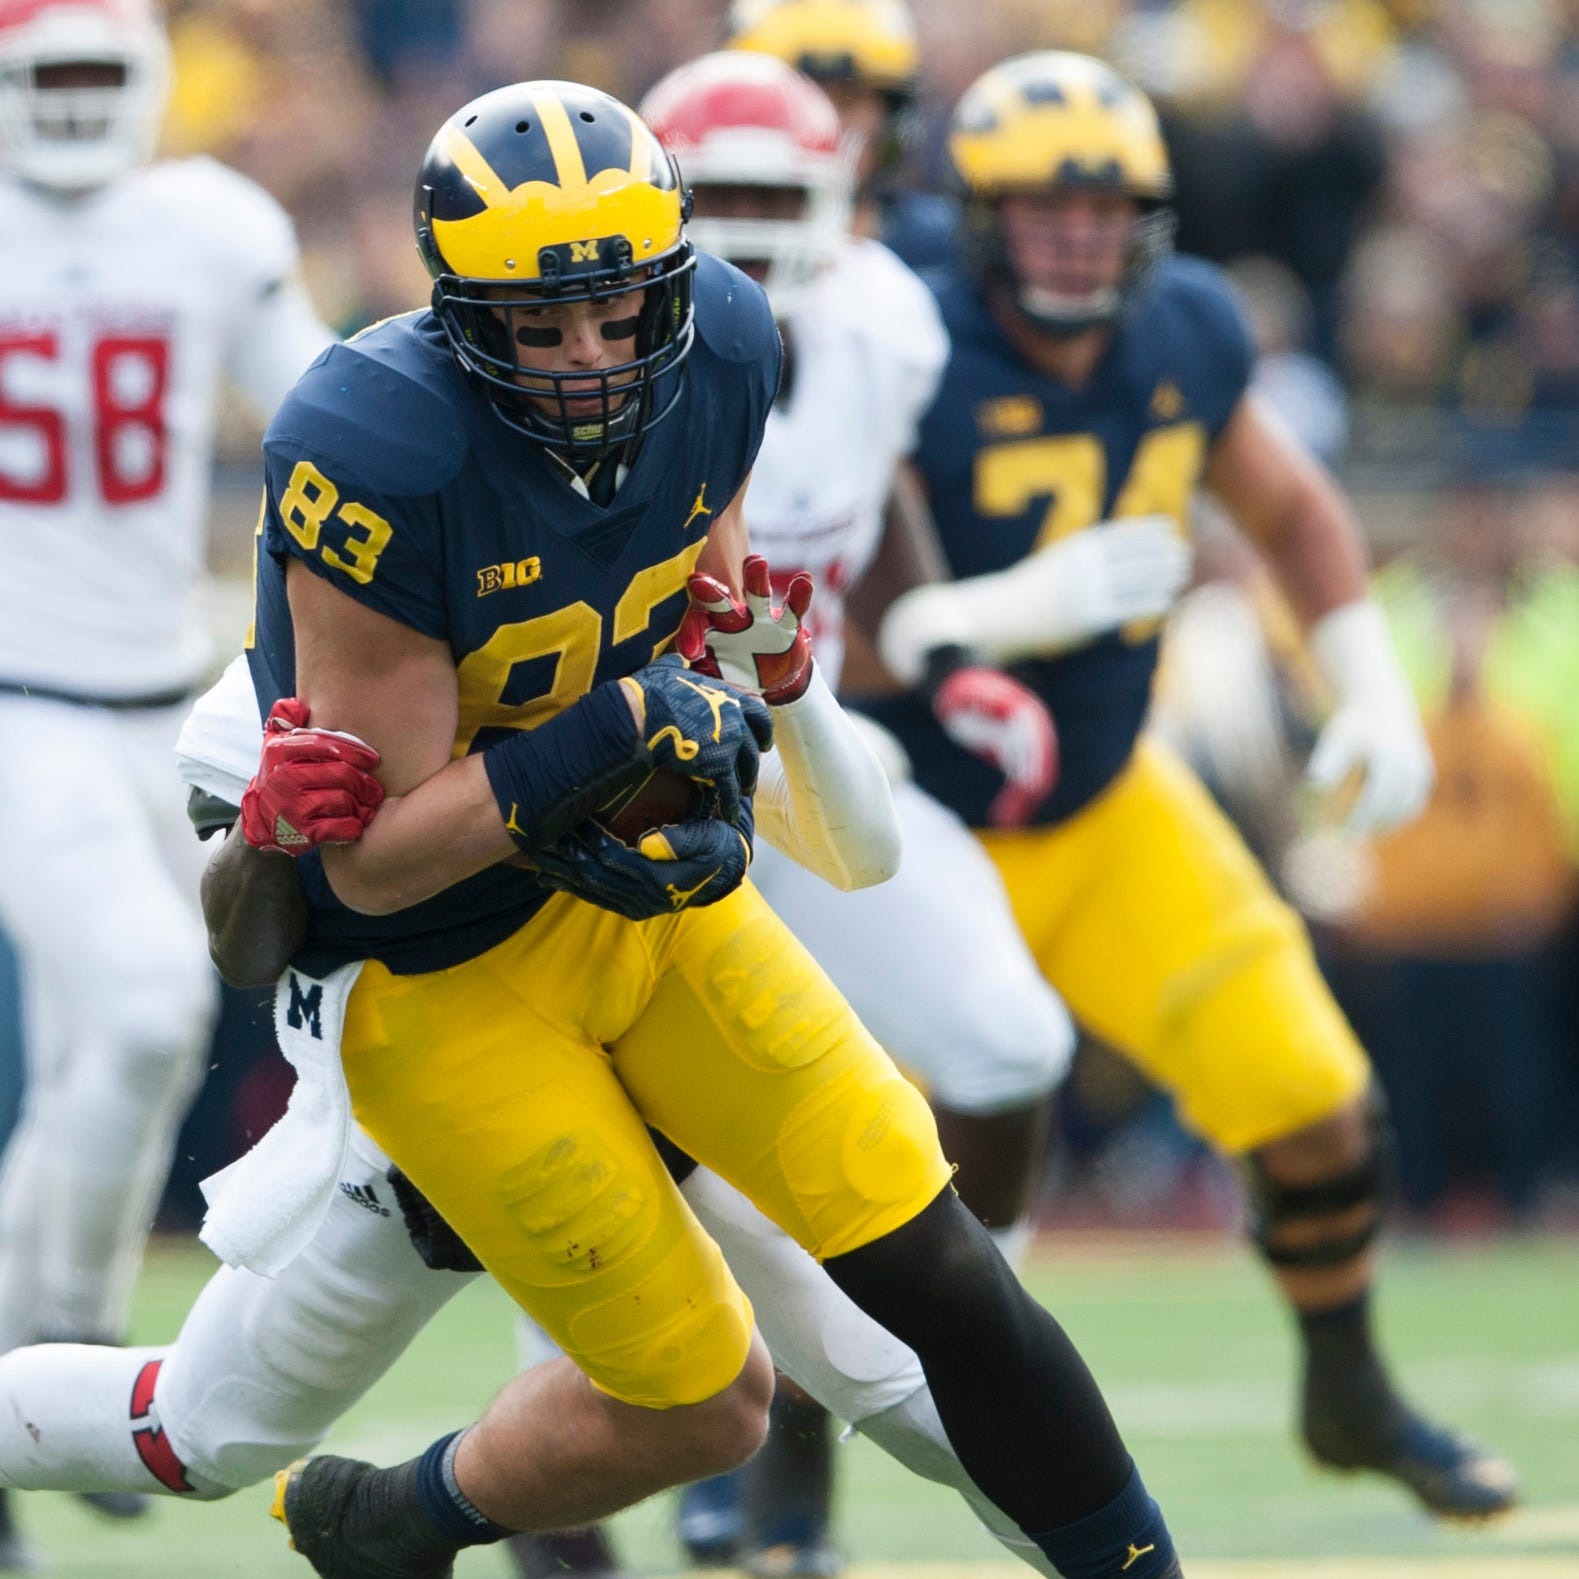 Michigan keeps focus on elusive Big Ten title: 'That's what we're here for'